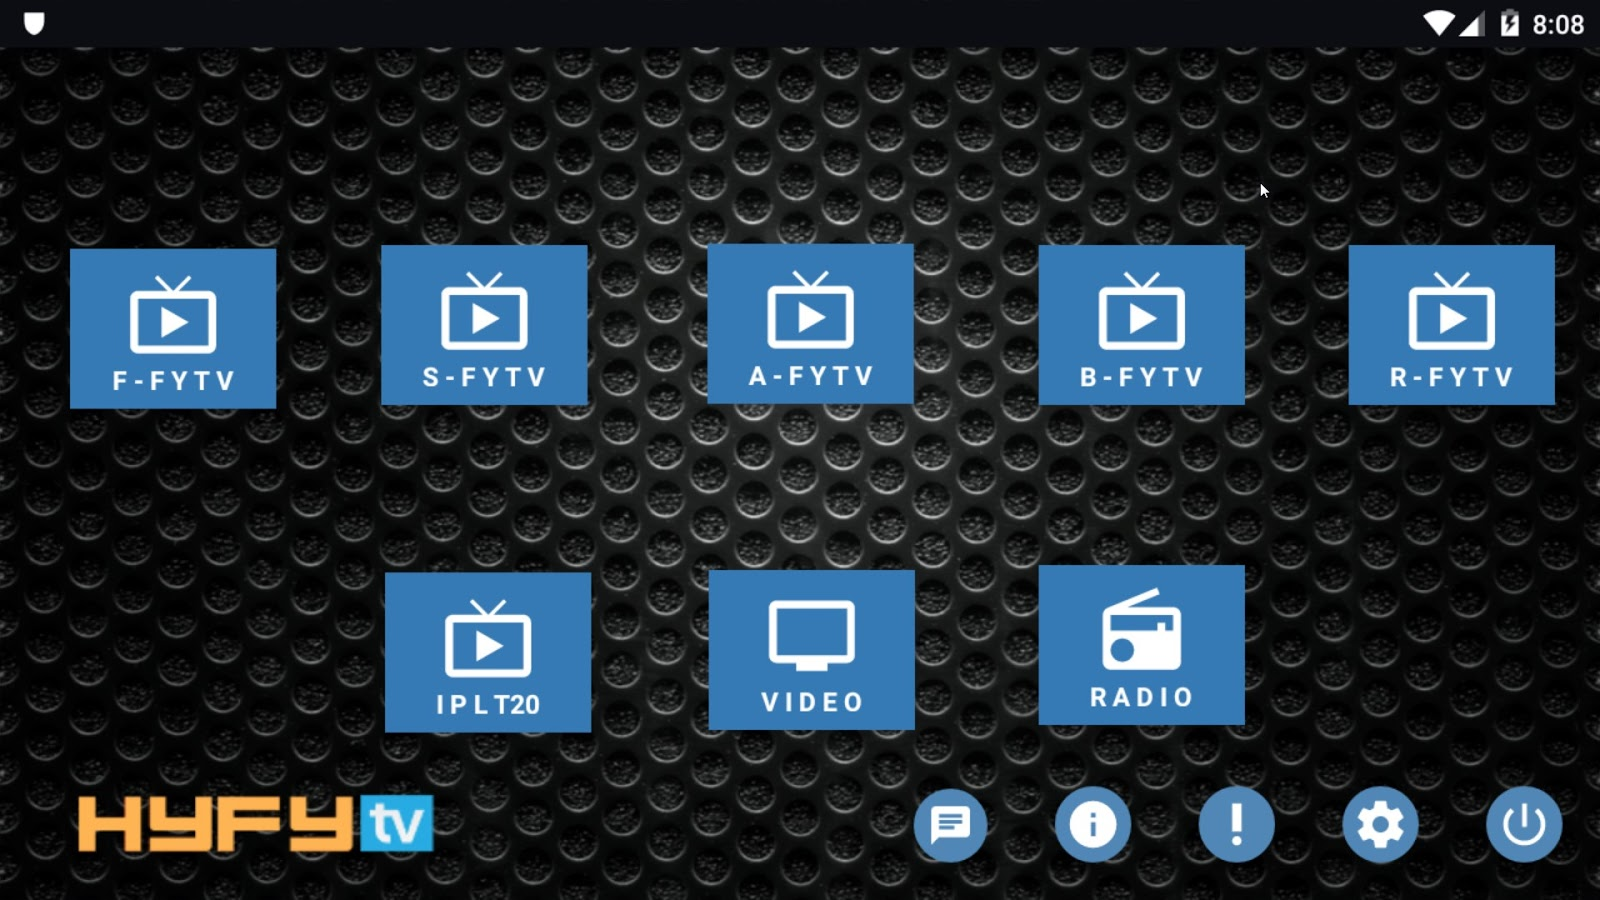 HyFyTV Apk App For All Android, Fire TV Devices - New Kodi